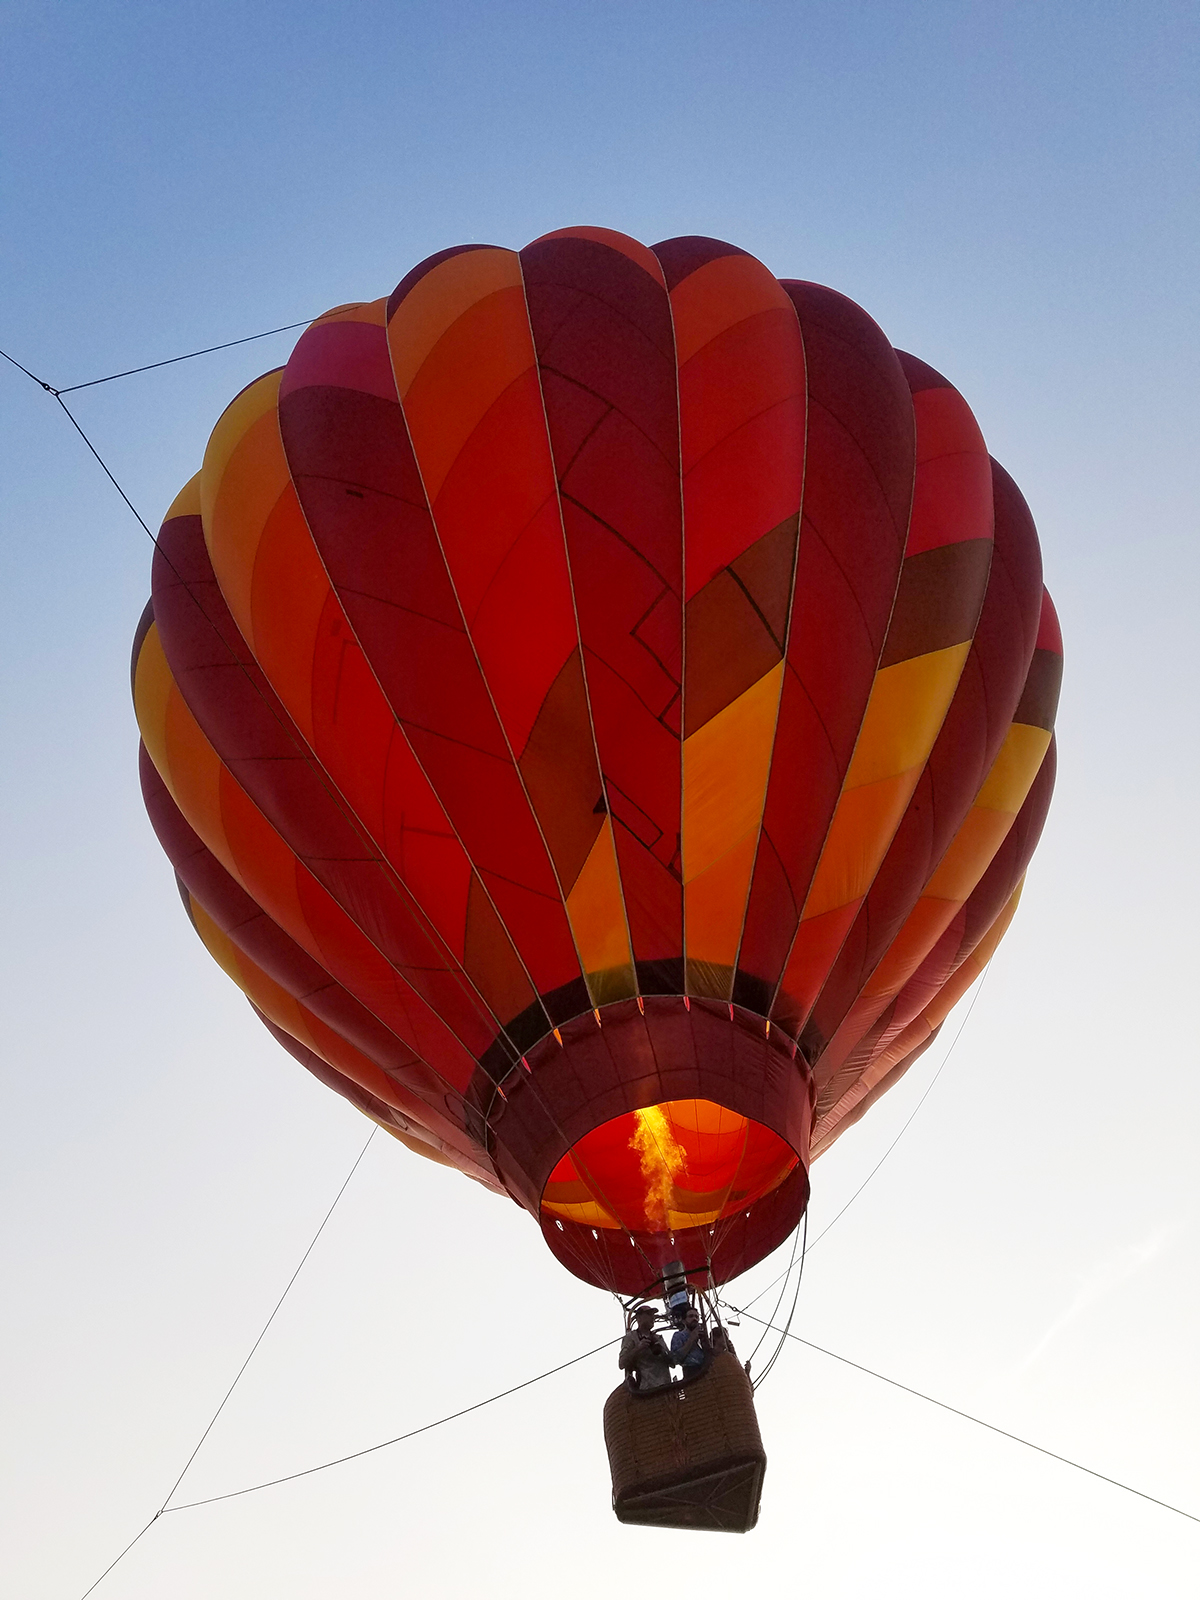 Image of Hot Air Balloon. Caption: Ever wonder what a hot air balloon ride feels like? Why not treat yourself to a tethered launch? You might get hooked on the feeling! Photo by Robin Catalano.